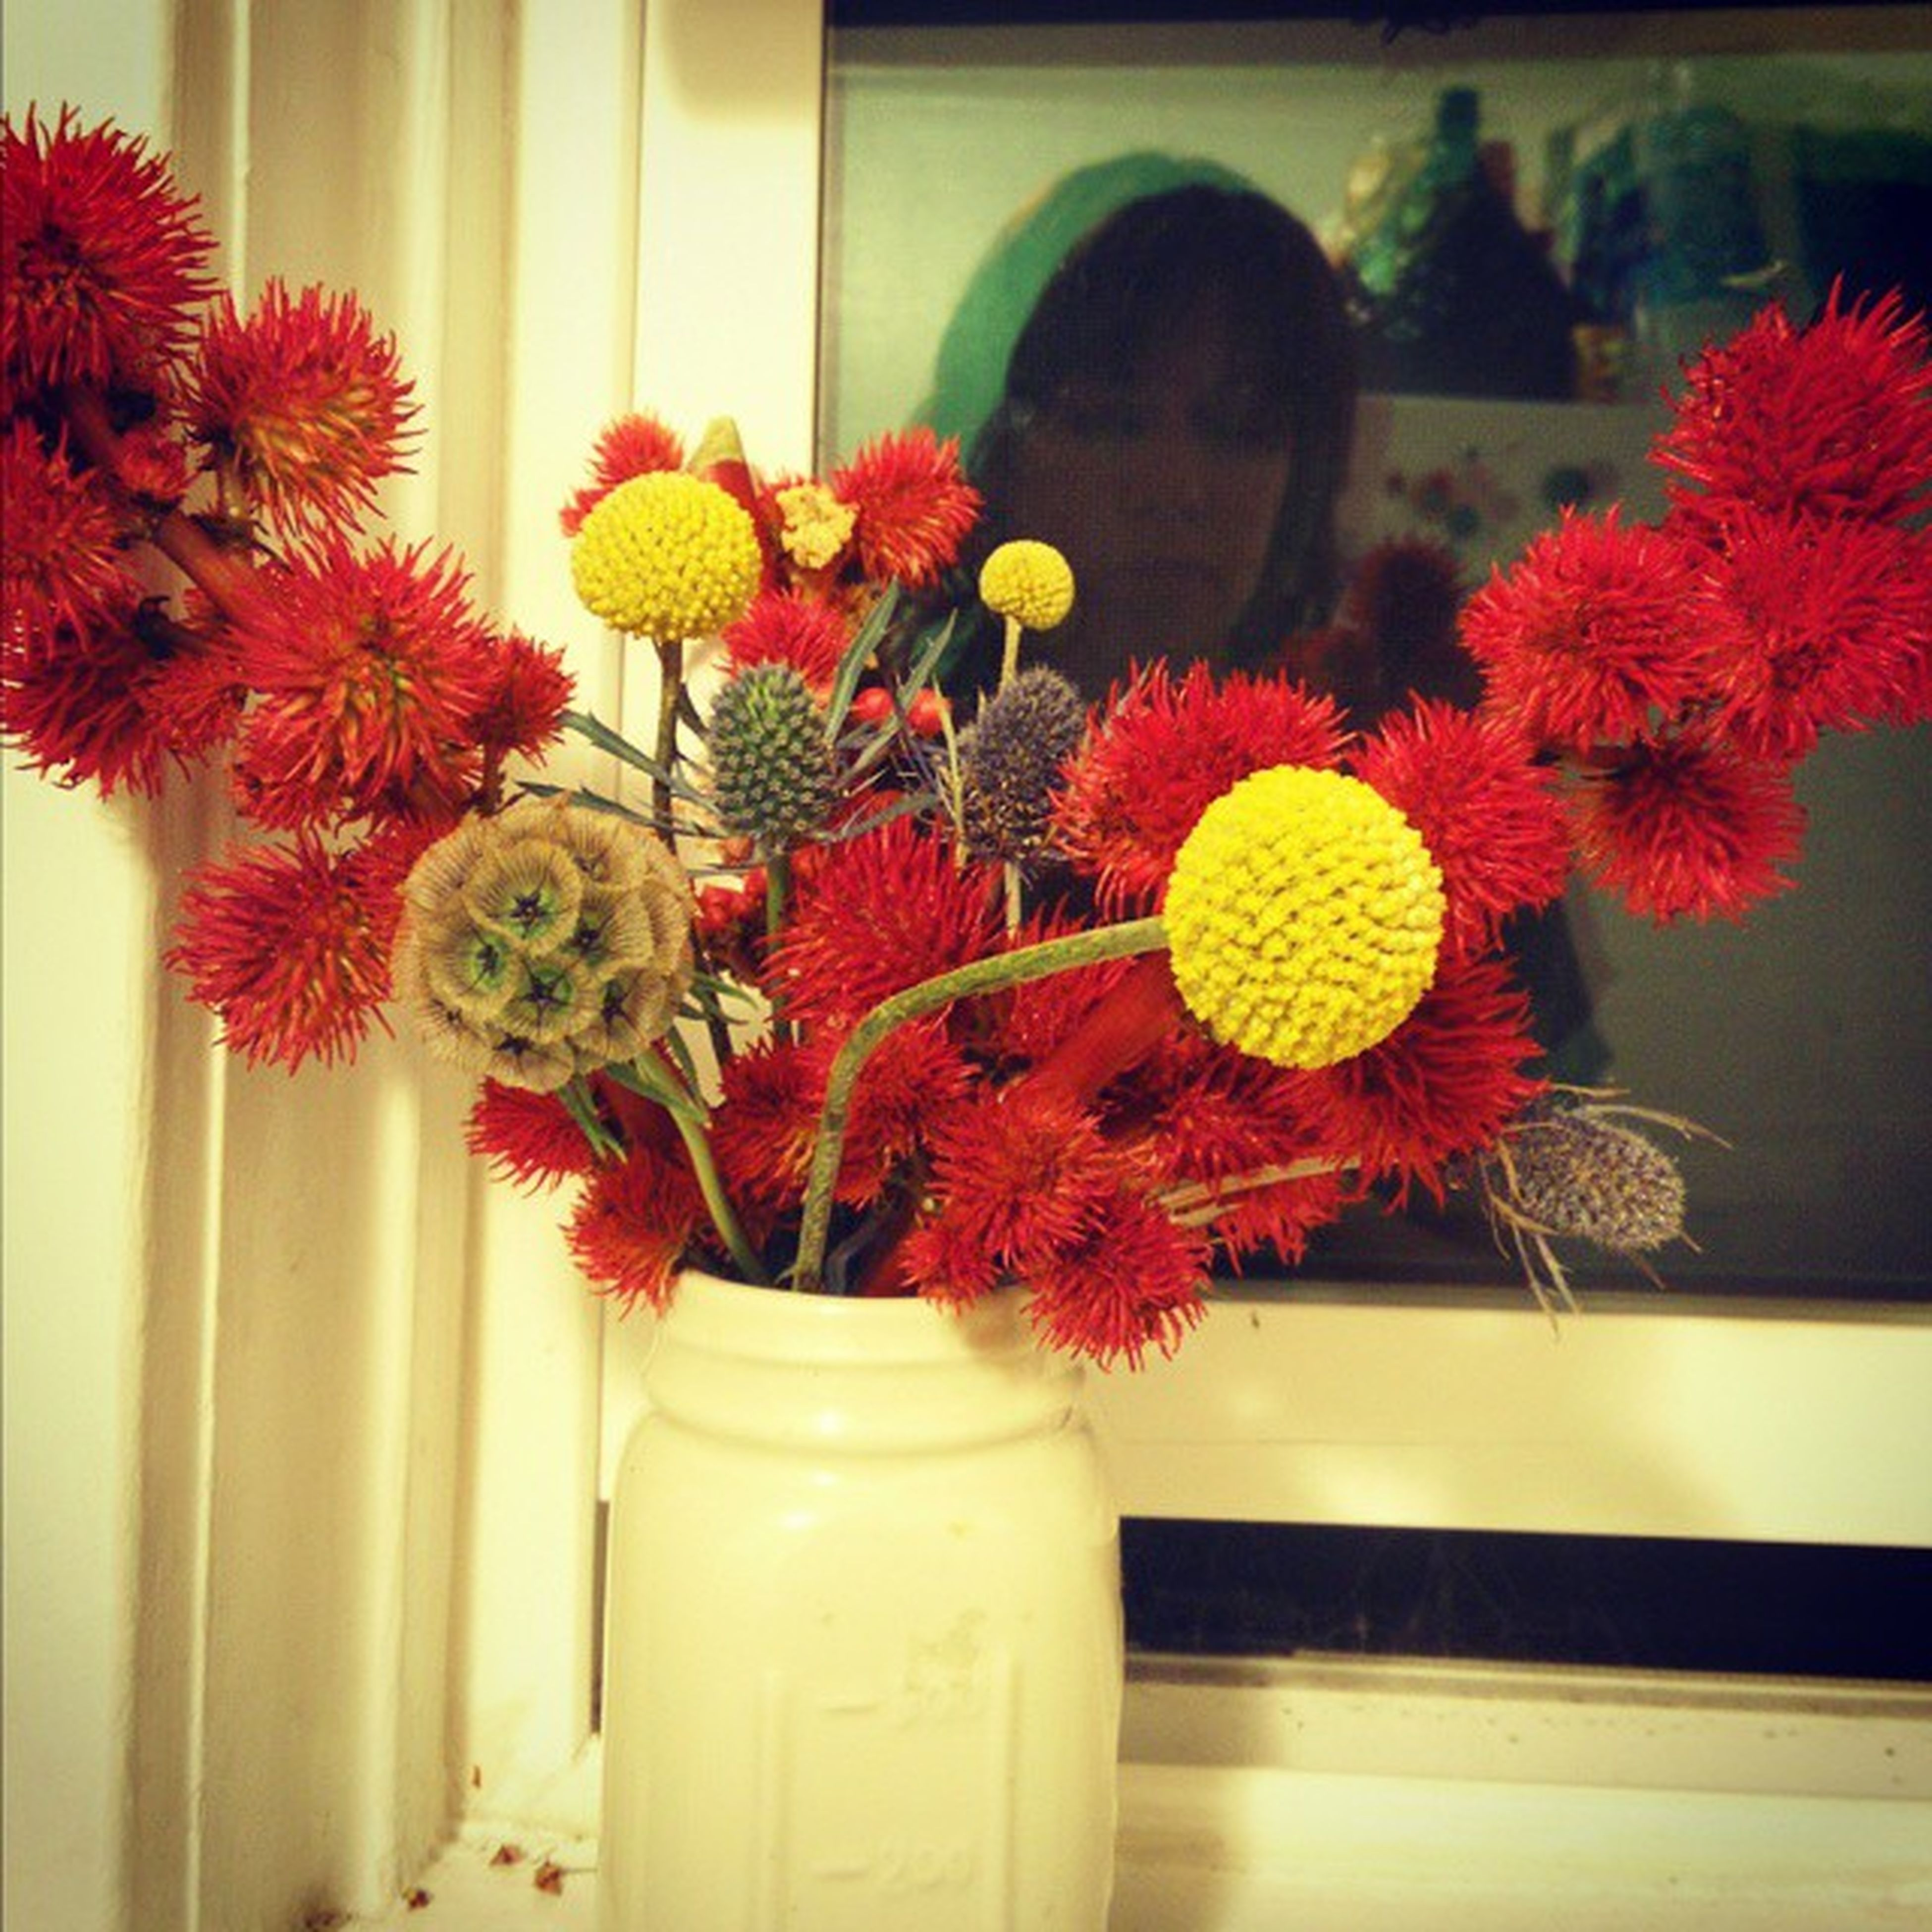 flower, indoors, vase, potted plant, red, fragility, freshness, decoration, petal, plant, growth, window, flower pot, flower head, home interior, glass - material, close-up, built structure, no people, beauty in nature